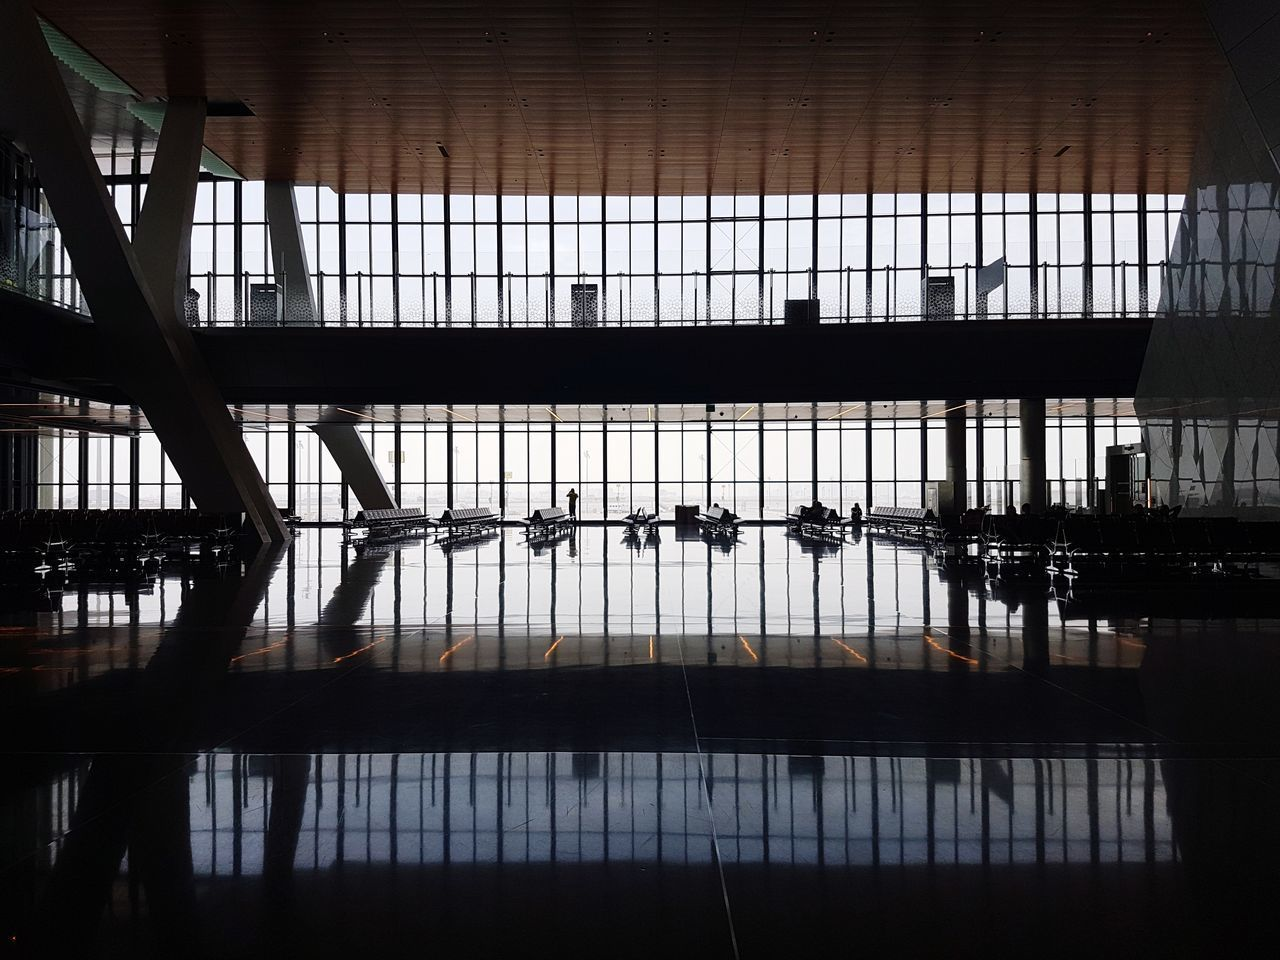 indoors, railing, reflection, silhouette, architecture, day, built structure, no people